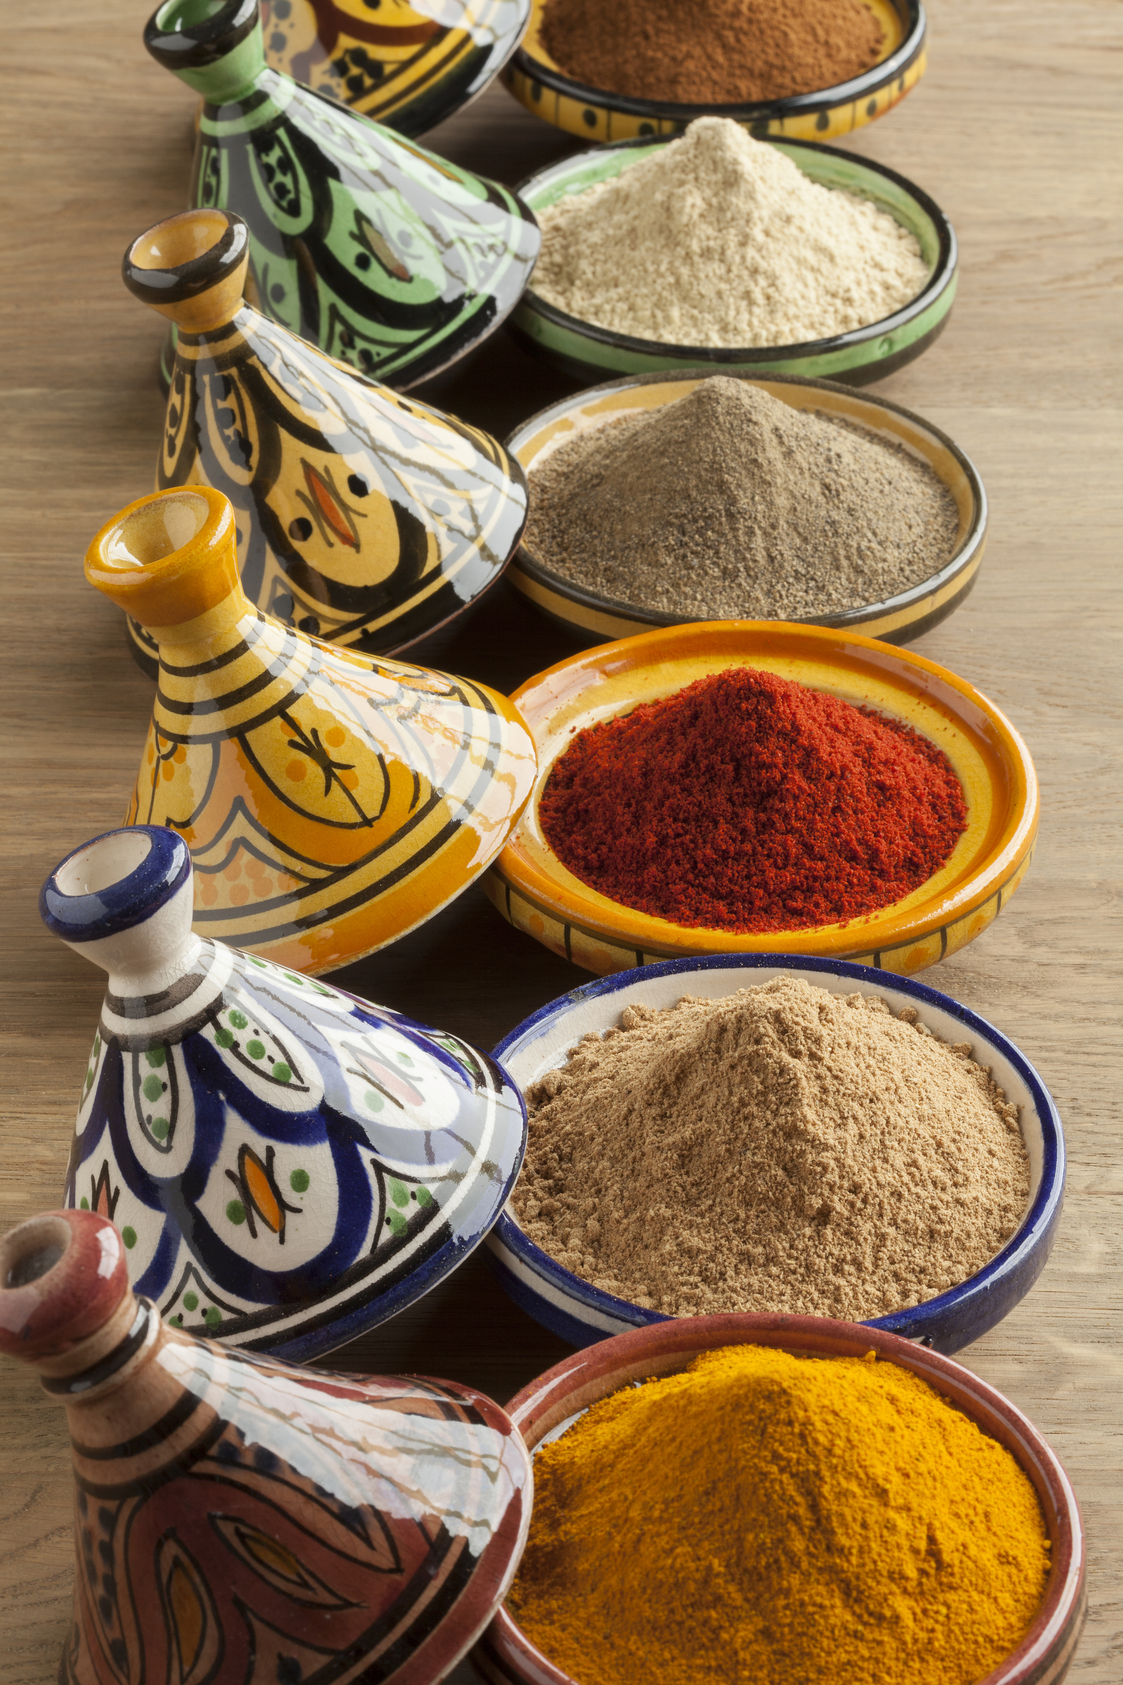 Diversity of Moroccan powder herbs in colorful ceramic tagines